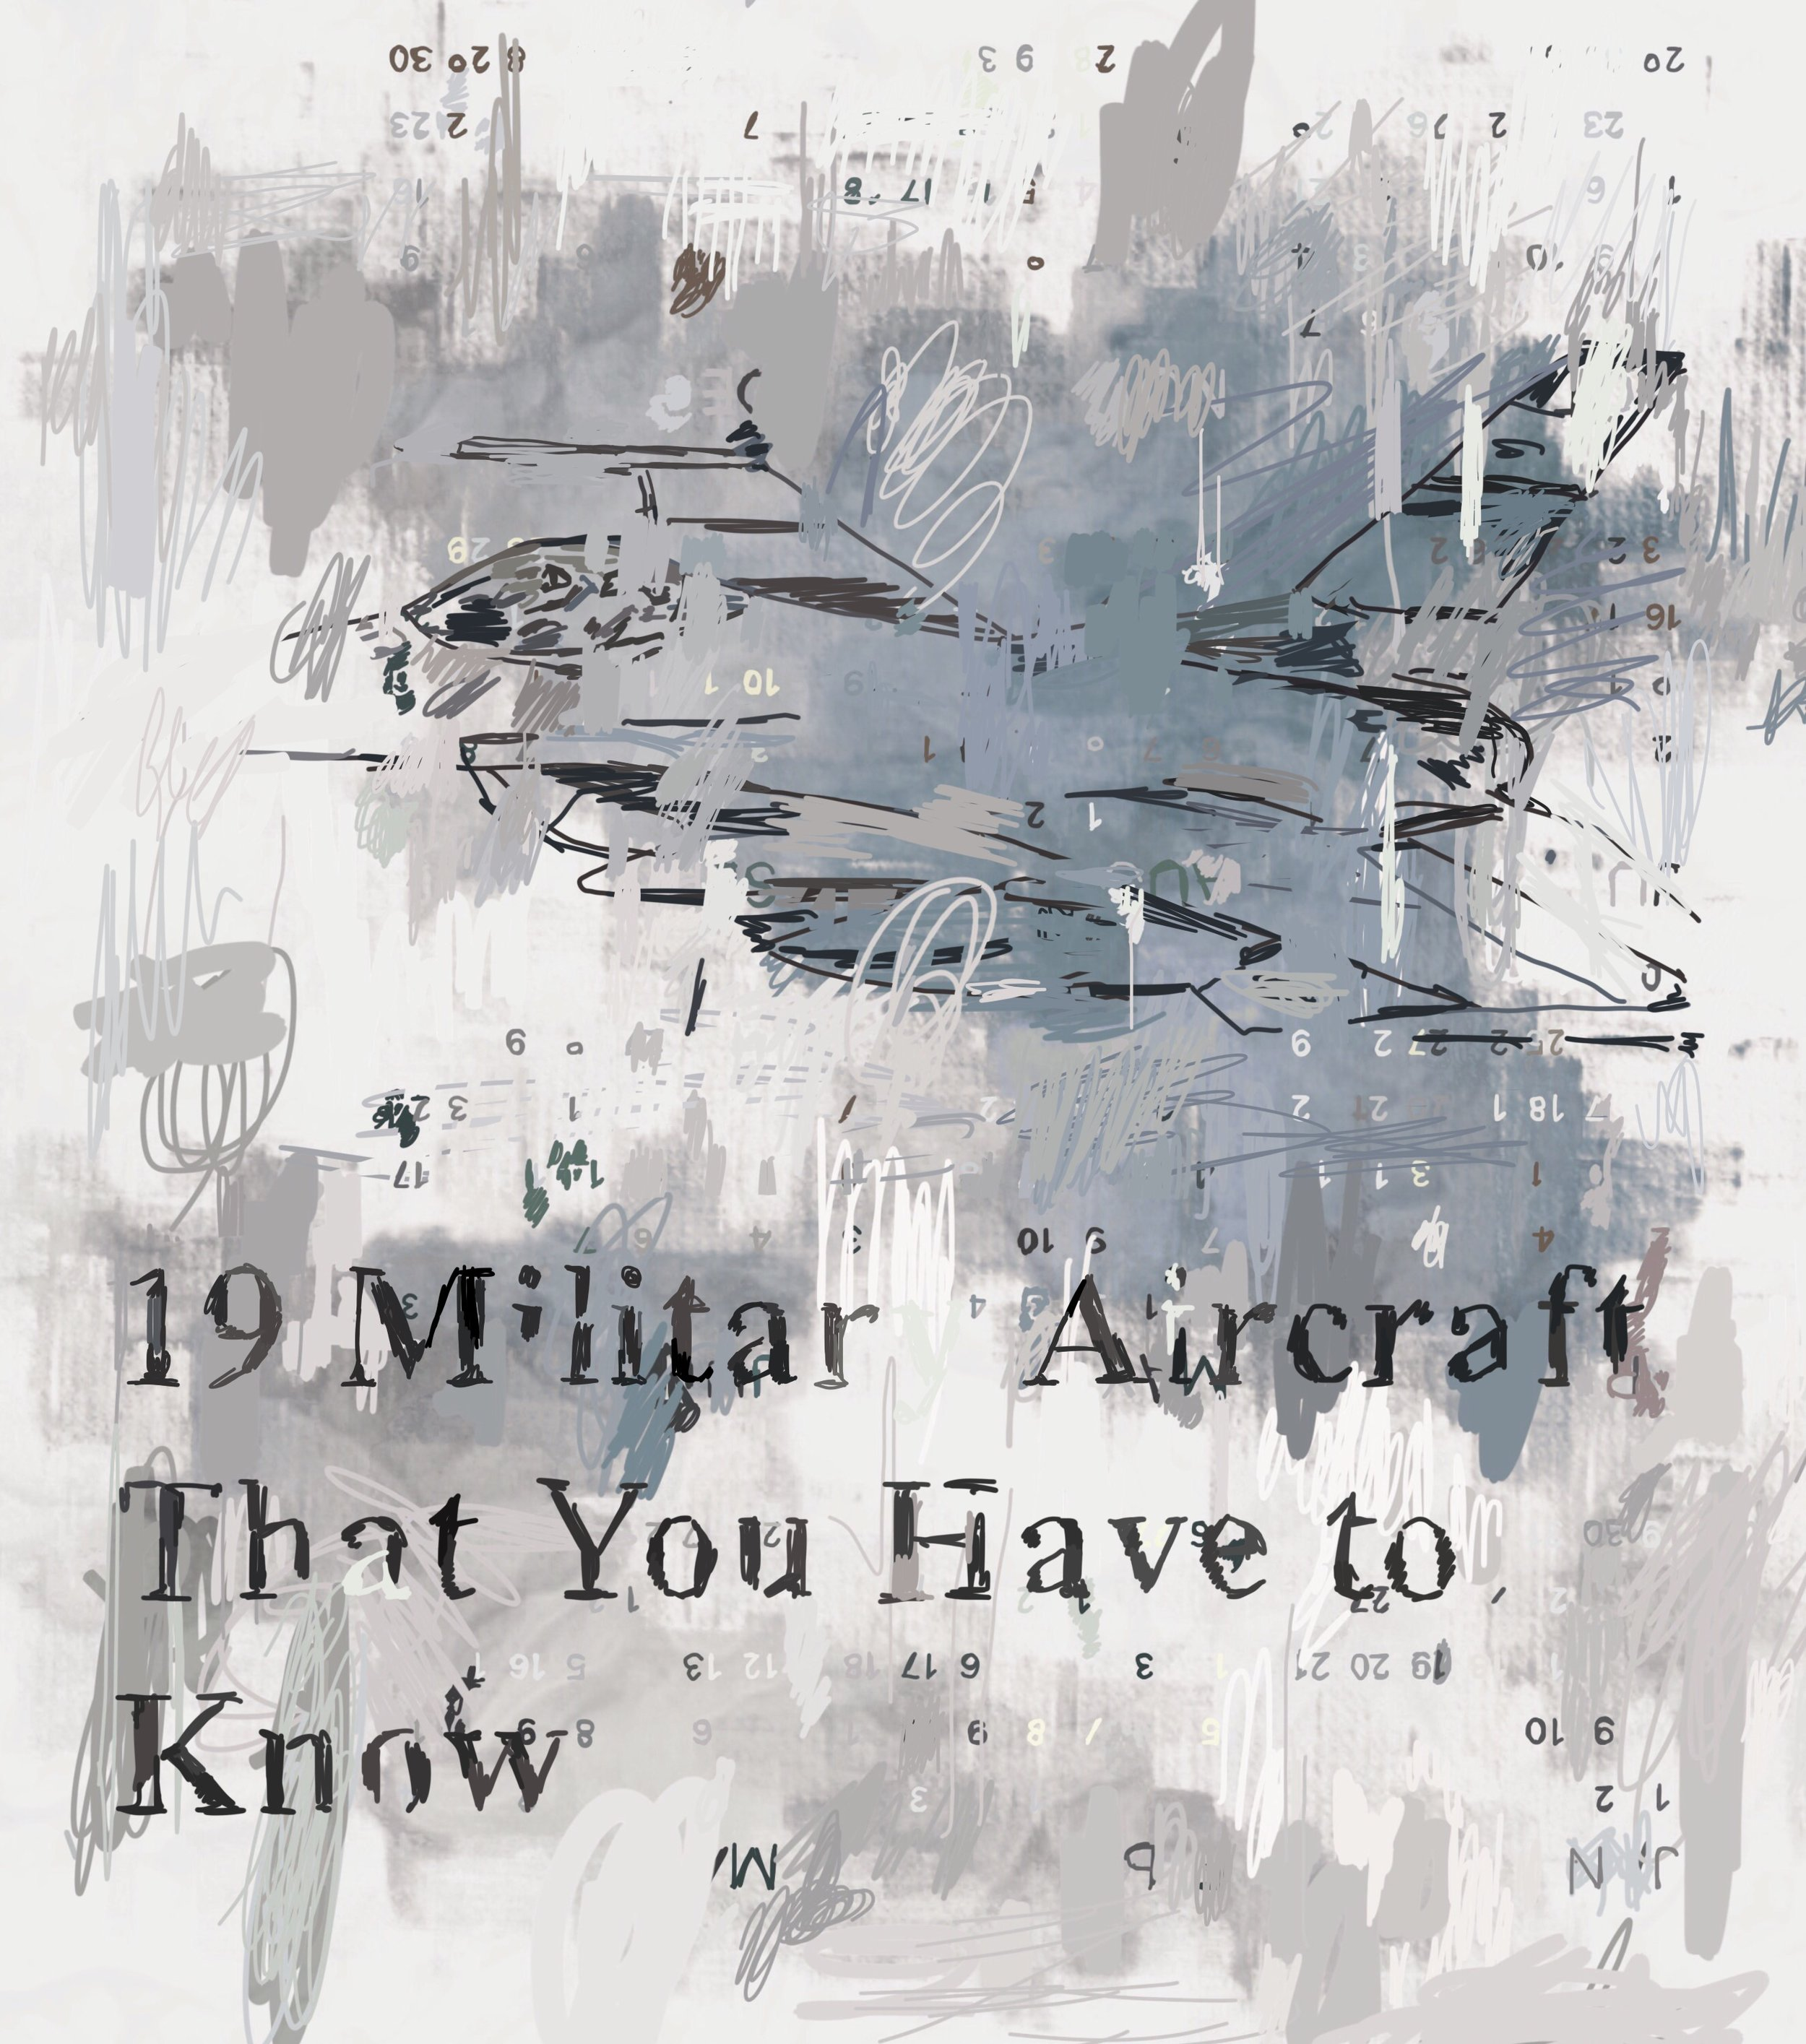 """19 Military Aircraft That You Have to Know"", iPhone 6S, digital image, 2017"